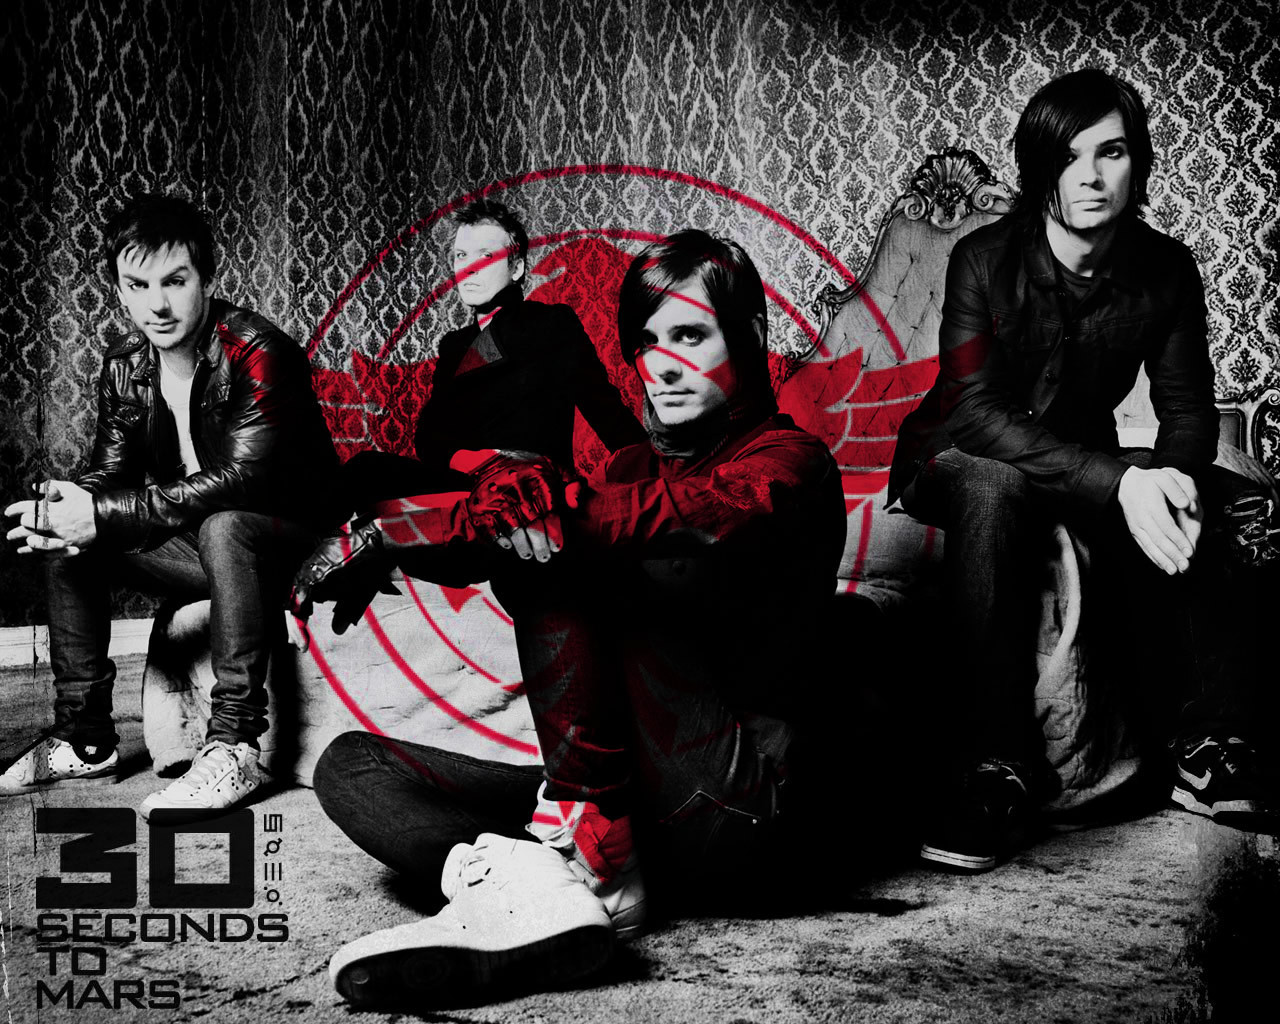 30 Seconds to Mars - 30 Seconds To Mars Photo (9084689 ...